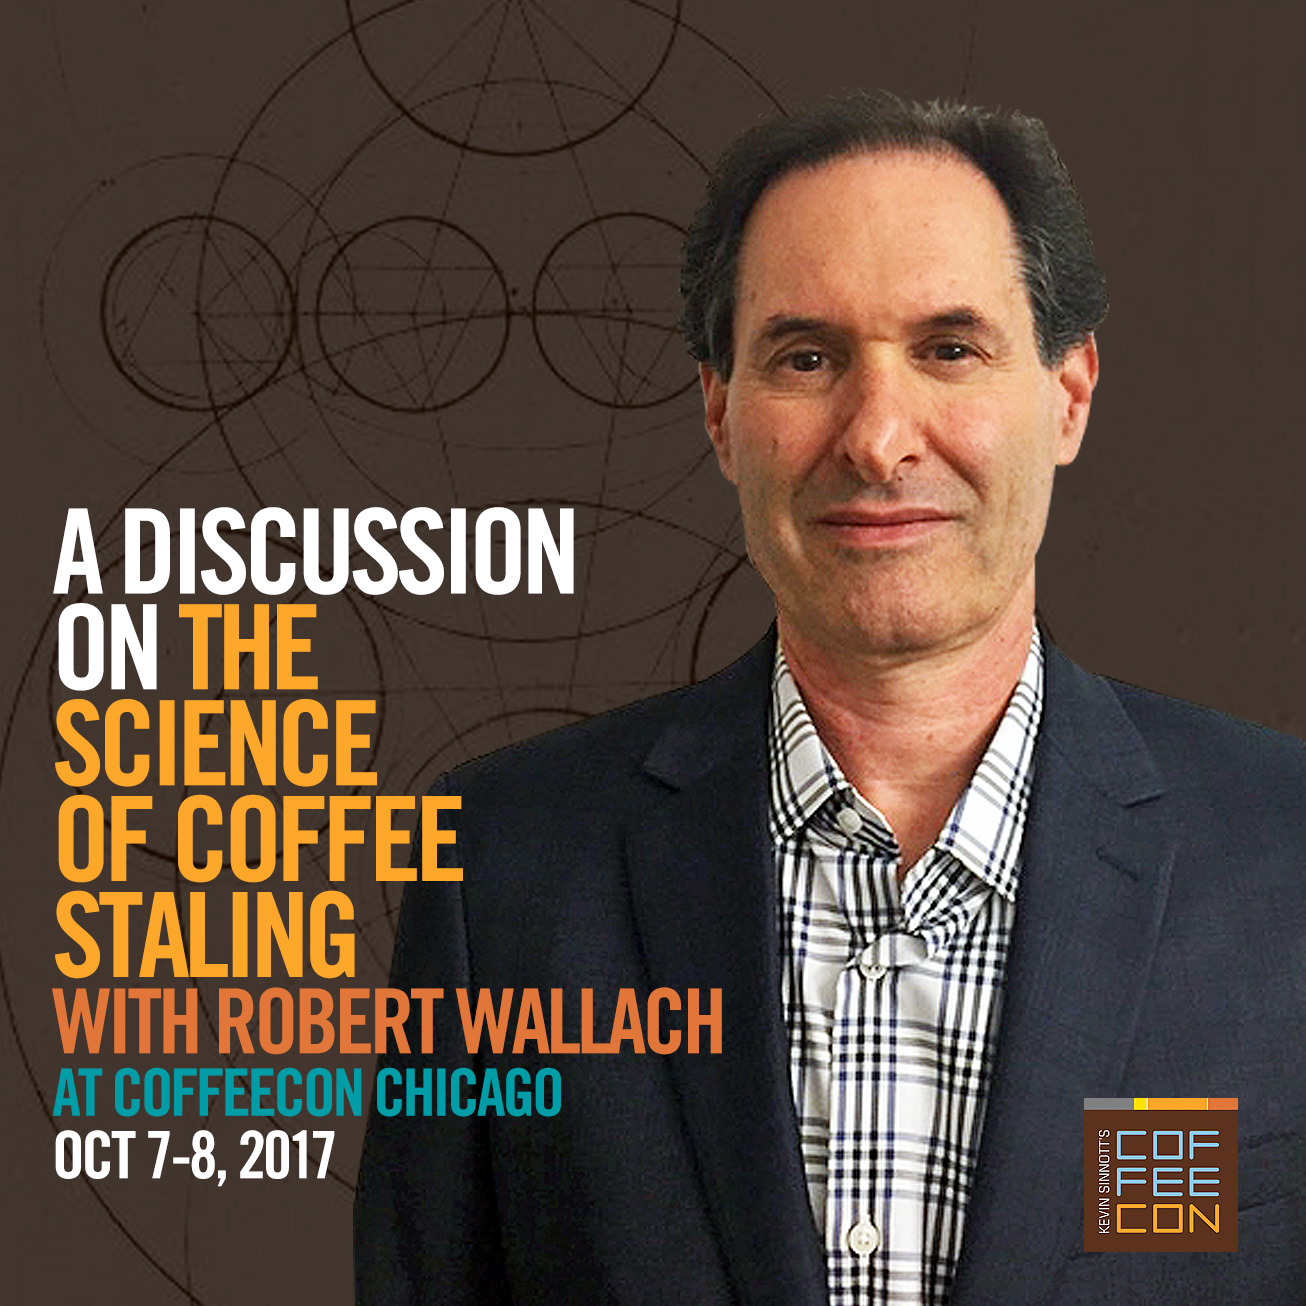 A Discussion on the Science of Coffee Staling